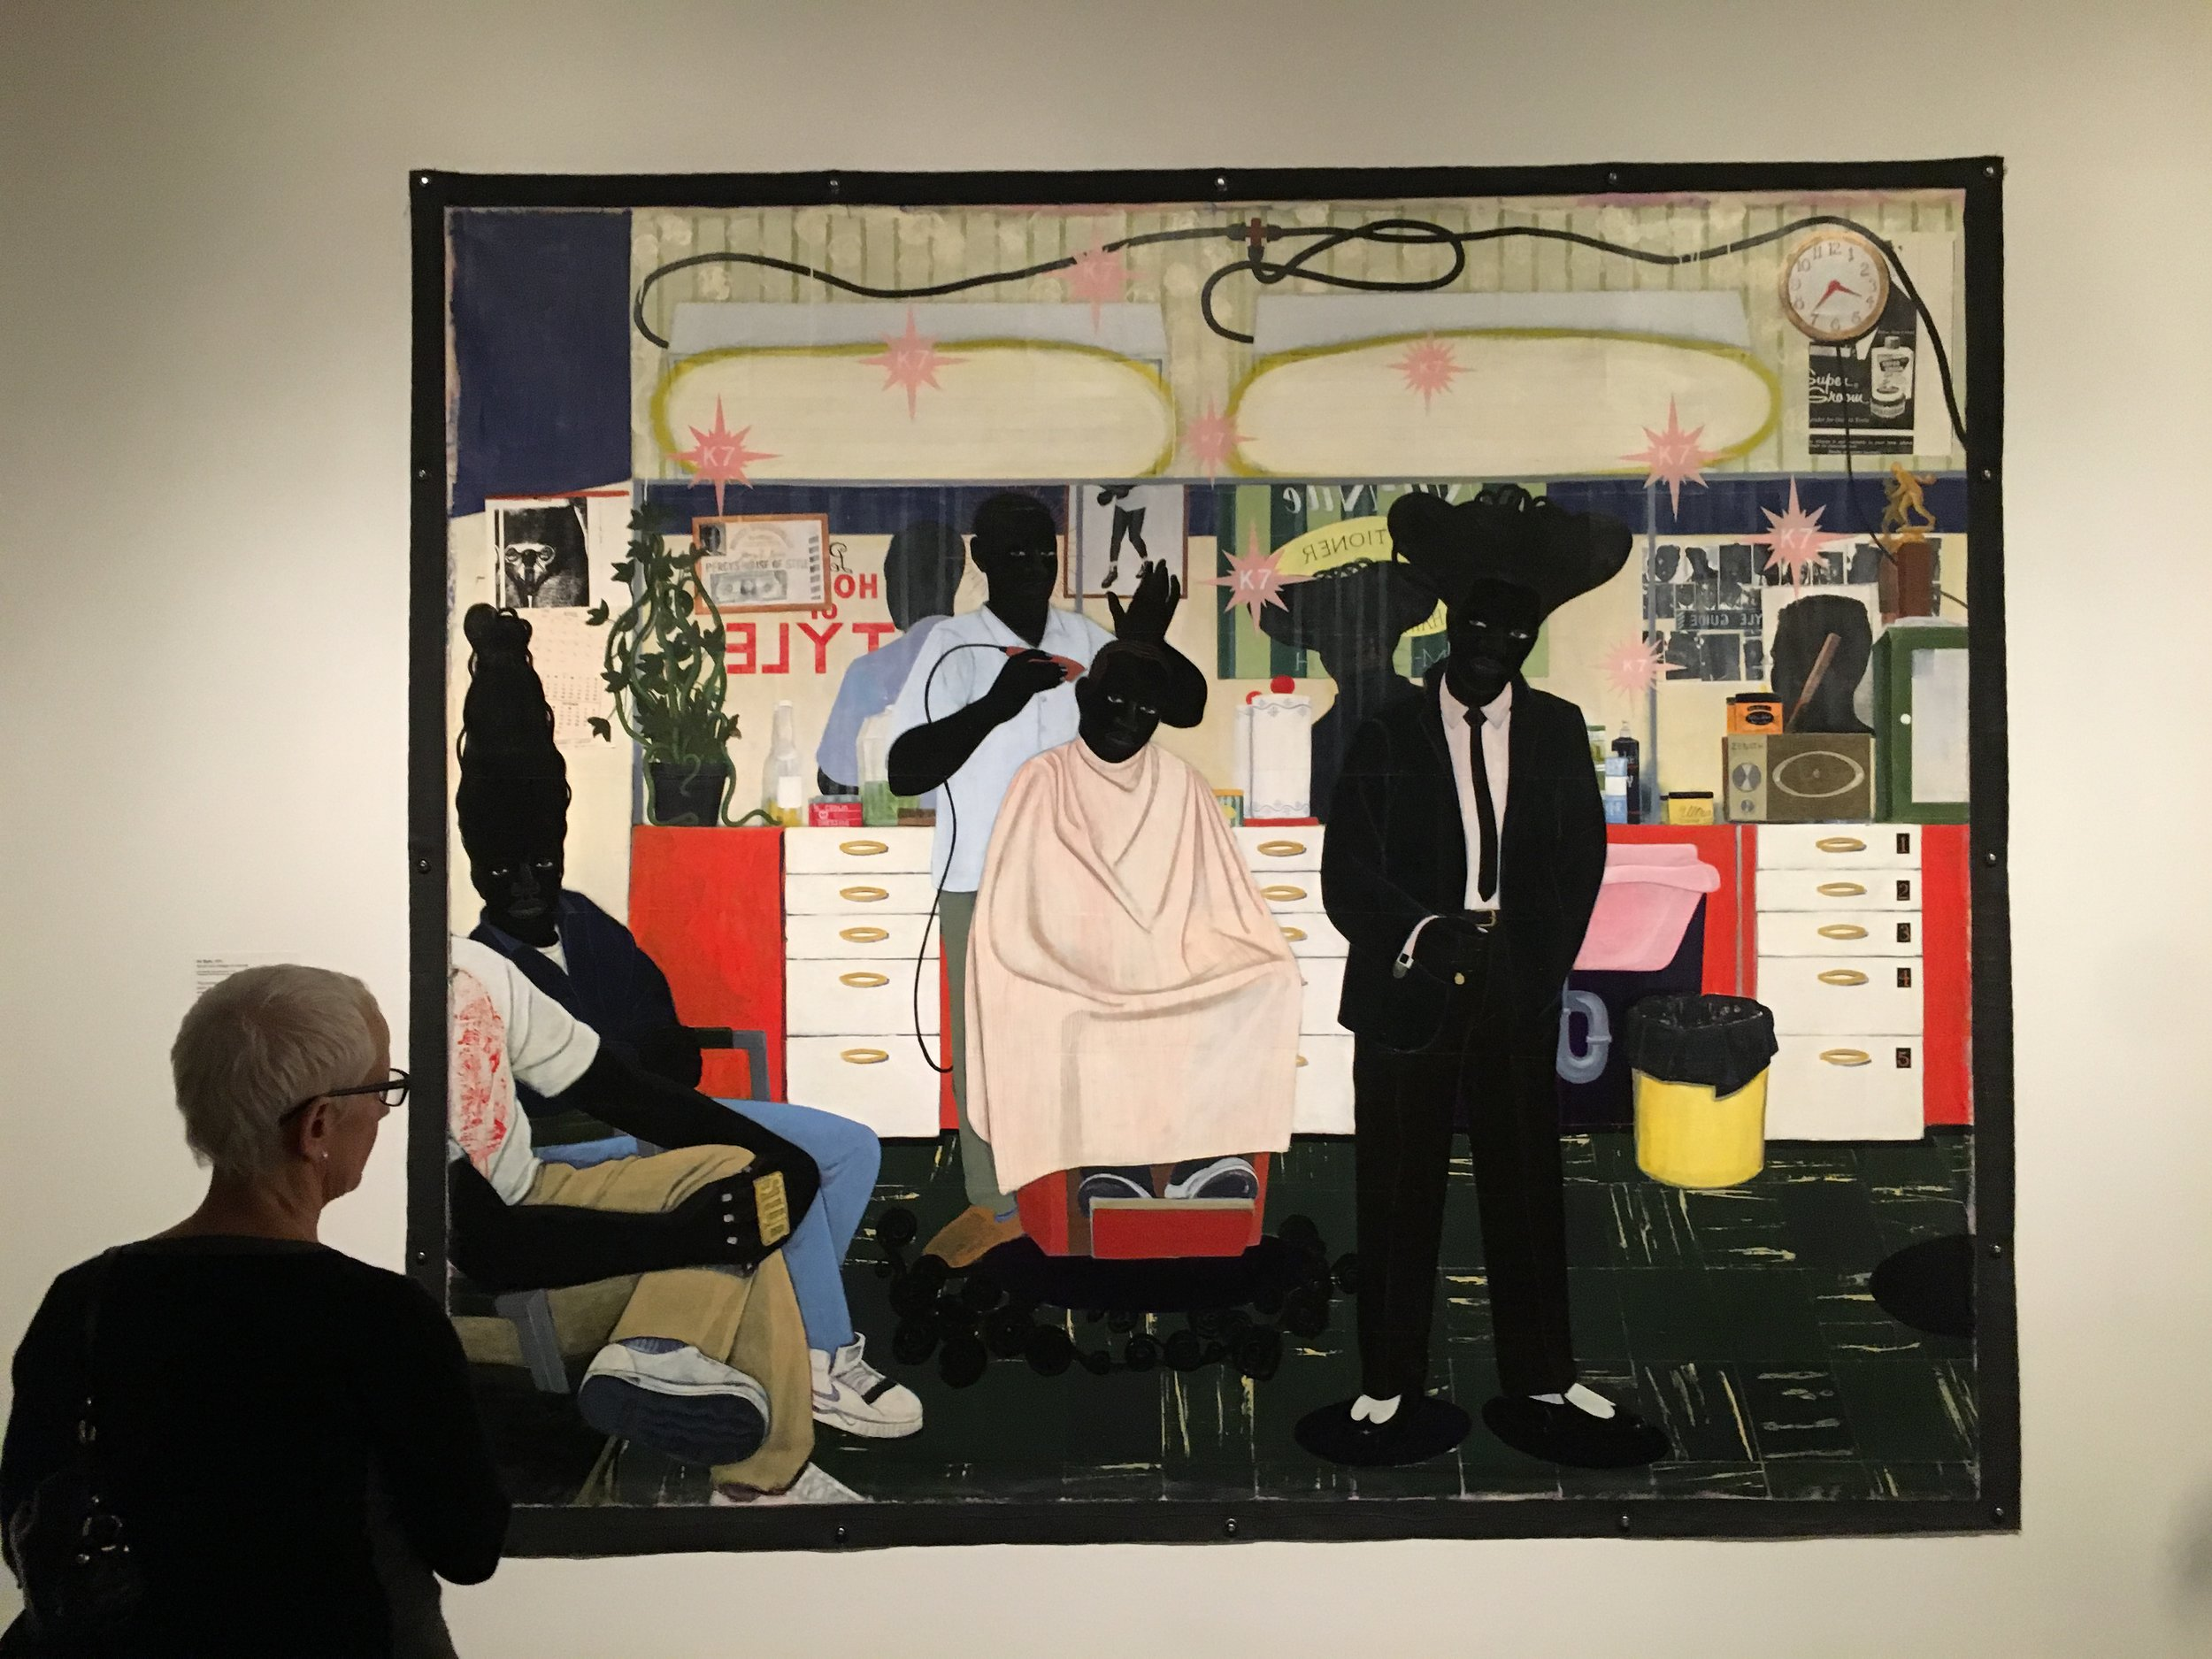 De Style (1993), Acrylic and collage on canvas, Los Angeles County Museum of Art, Purchased with funds provided by Ruth and Jacob Bloom